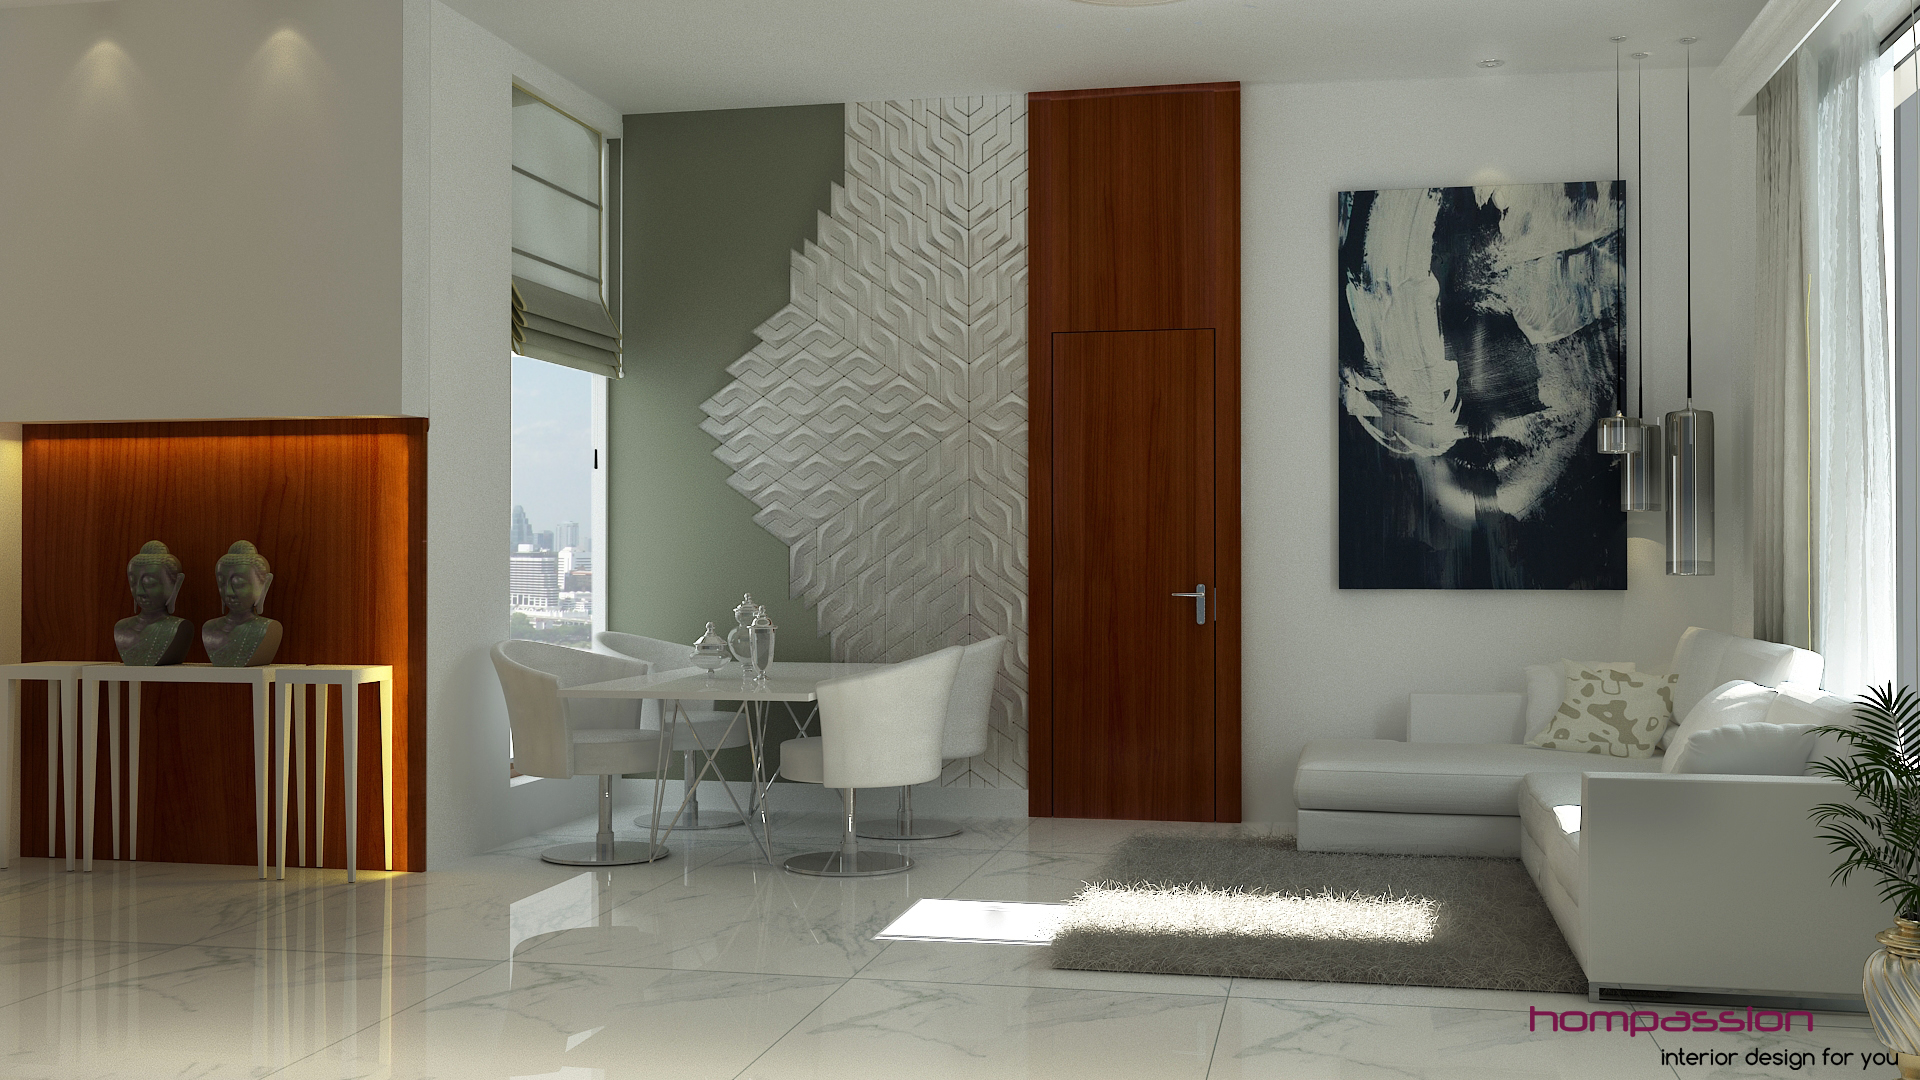 images of living rooms with interior designs modern corner shelves for room our work designers in mumbai decorators contemporary design hompassion view 1 jpg